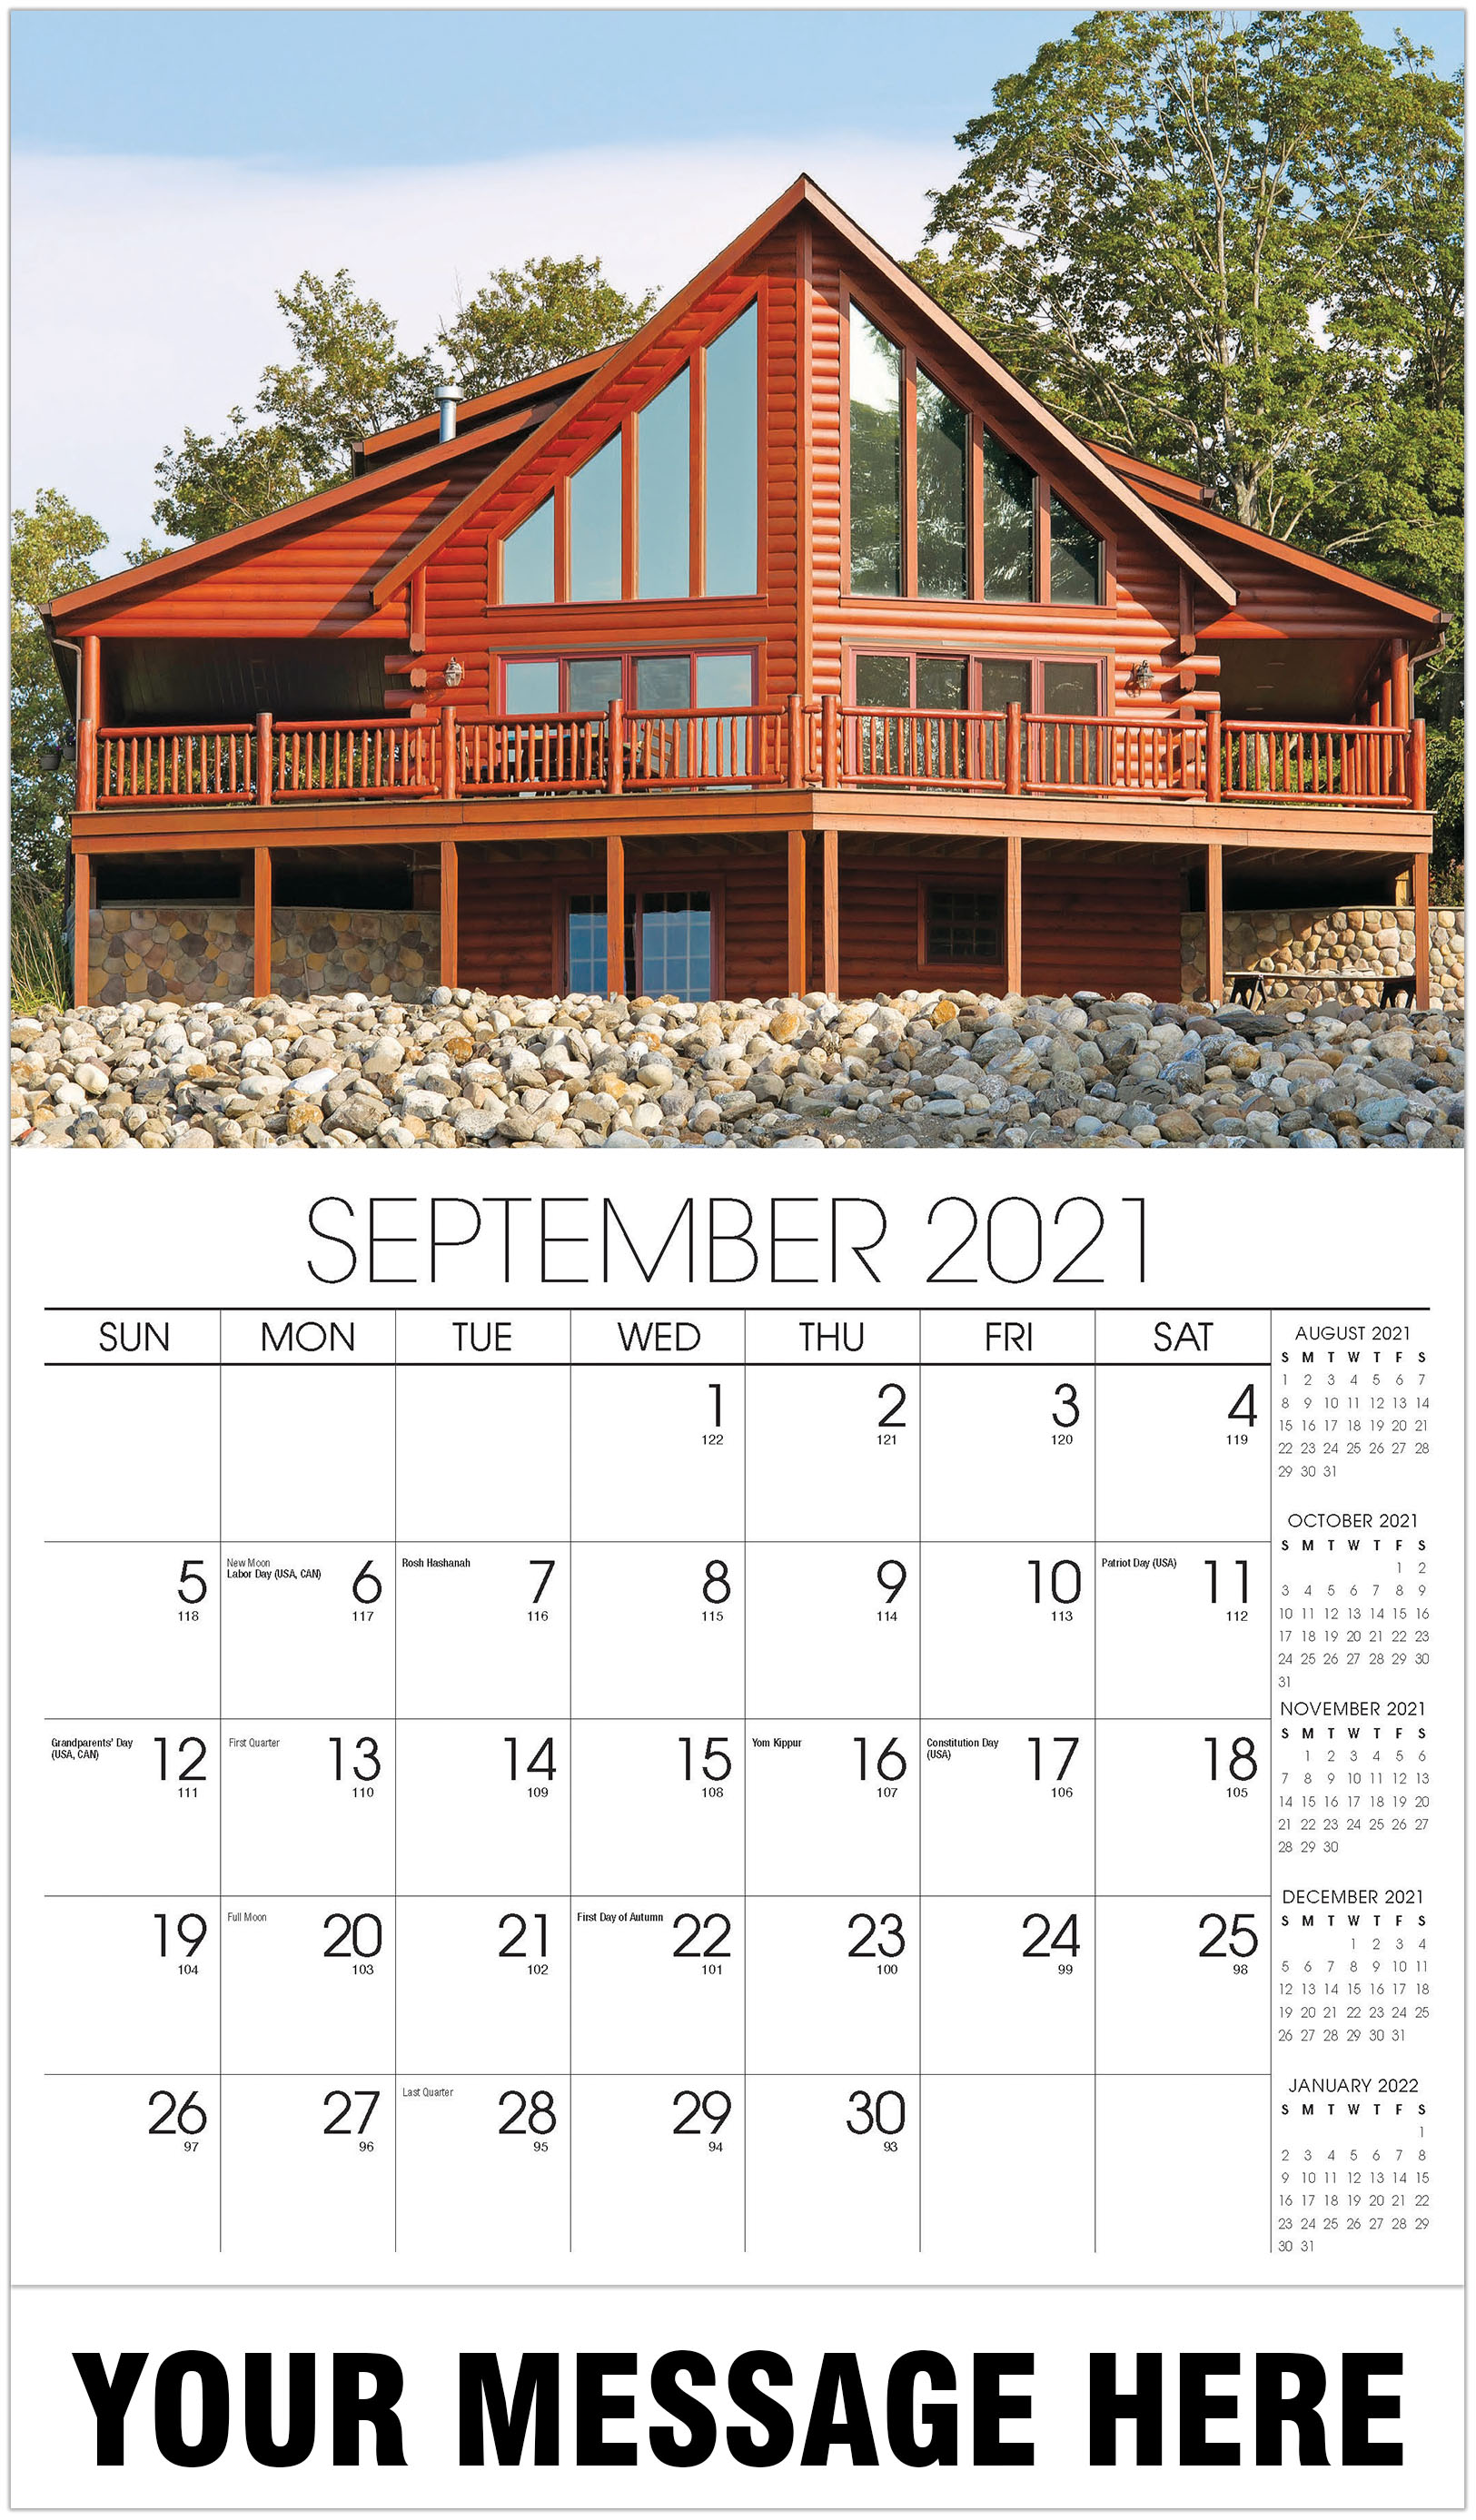 Luxury Homes Calendar - September - Homes 2021 Promotional Calendar